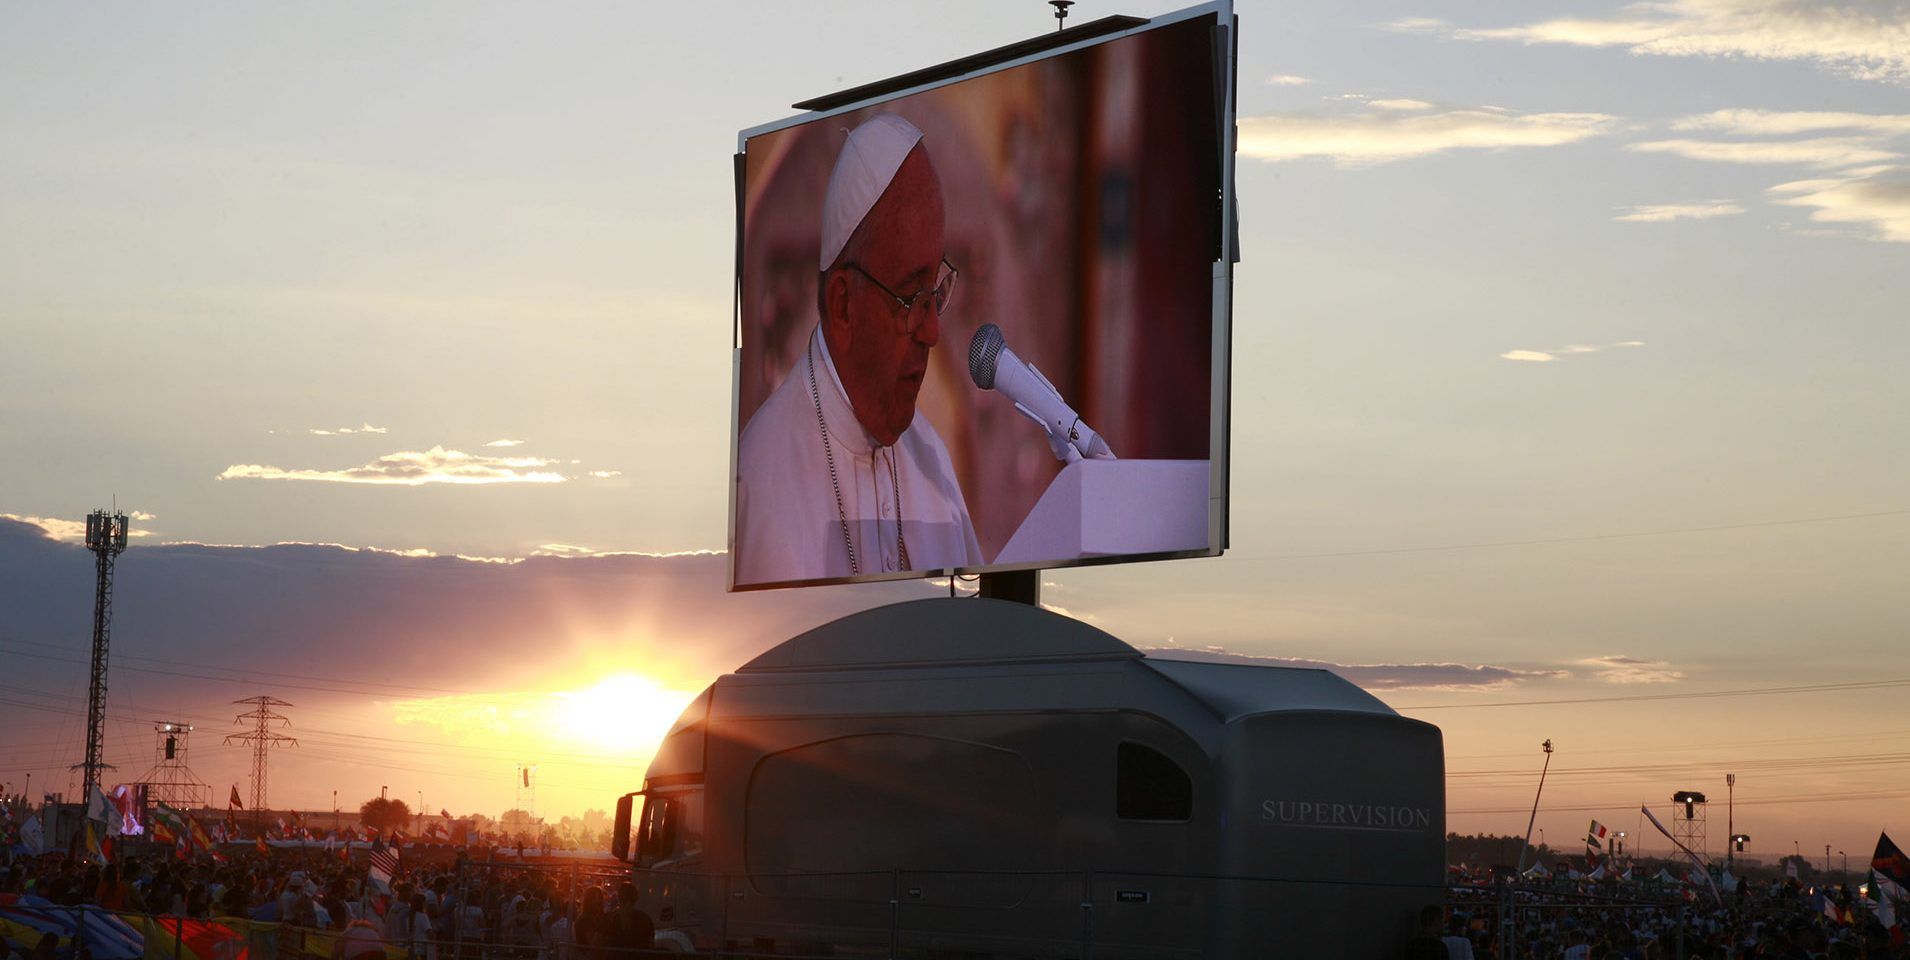 Giant LED screen SUPERVISION LMB46 World Youth Day 2016 Krakow